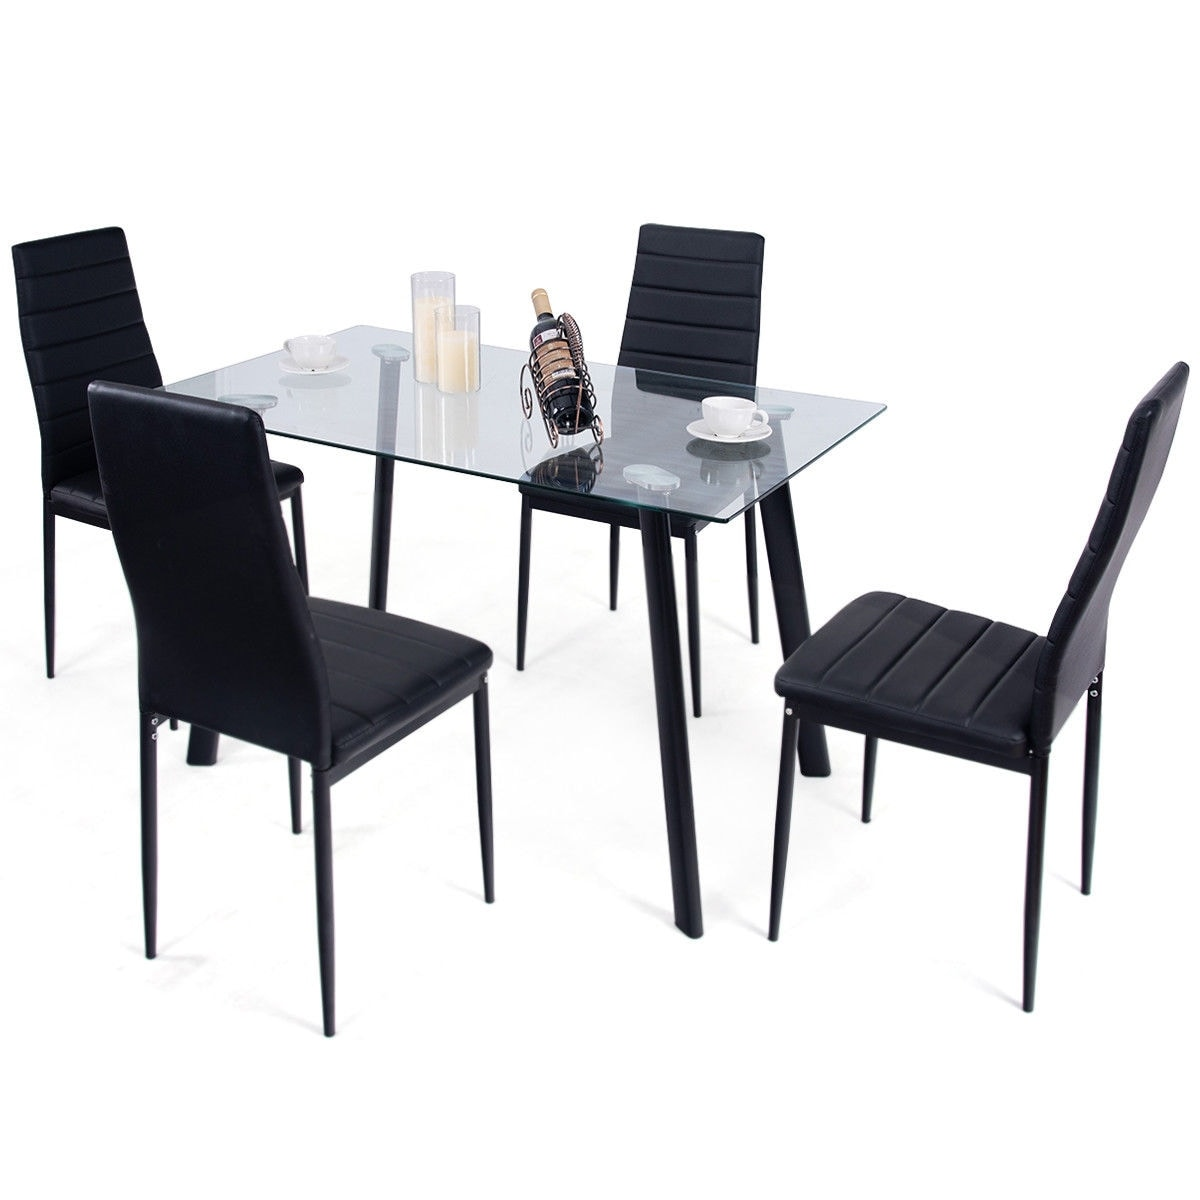 Gentil Shop Costway Modern Glass Dining Table Set Tempered Glass Top U0026 PVC Leather  Chair W/4 Chairs Black   Free Shipping Today   Overstock   21620974